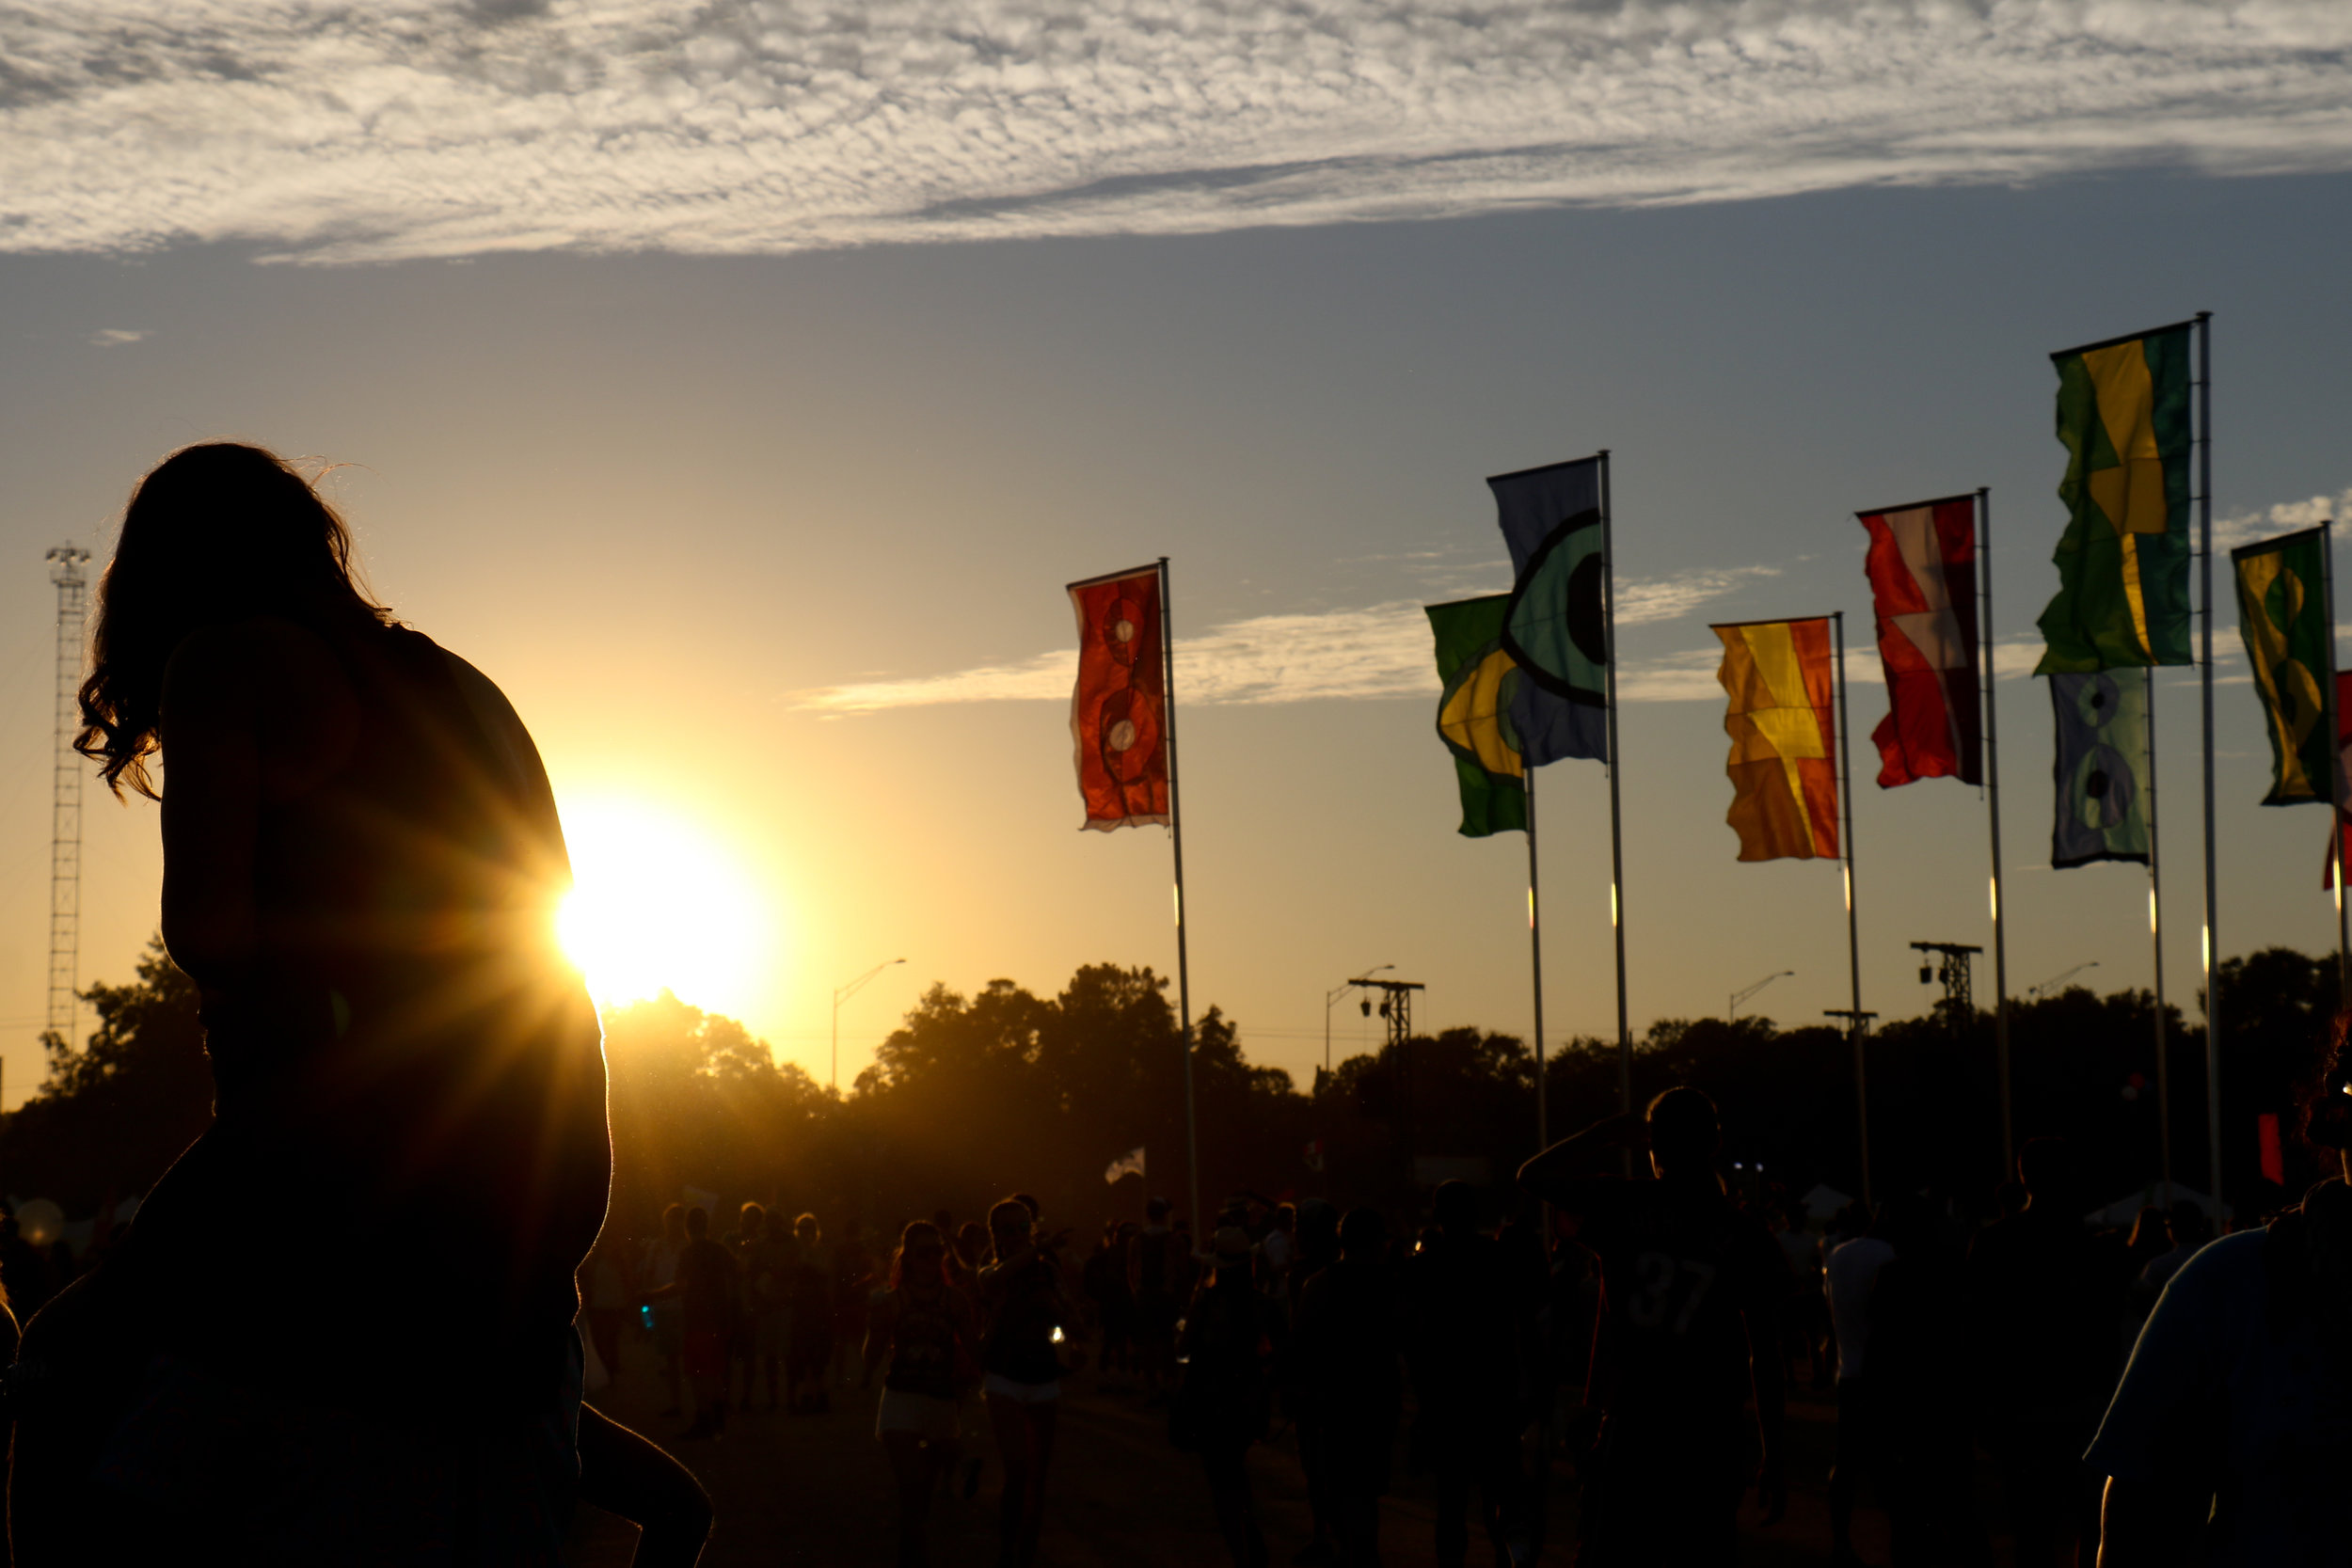 A festival-goer overlooks the festival from her friend's shoulders.